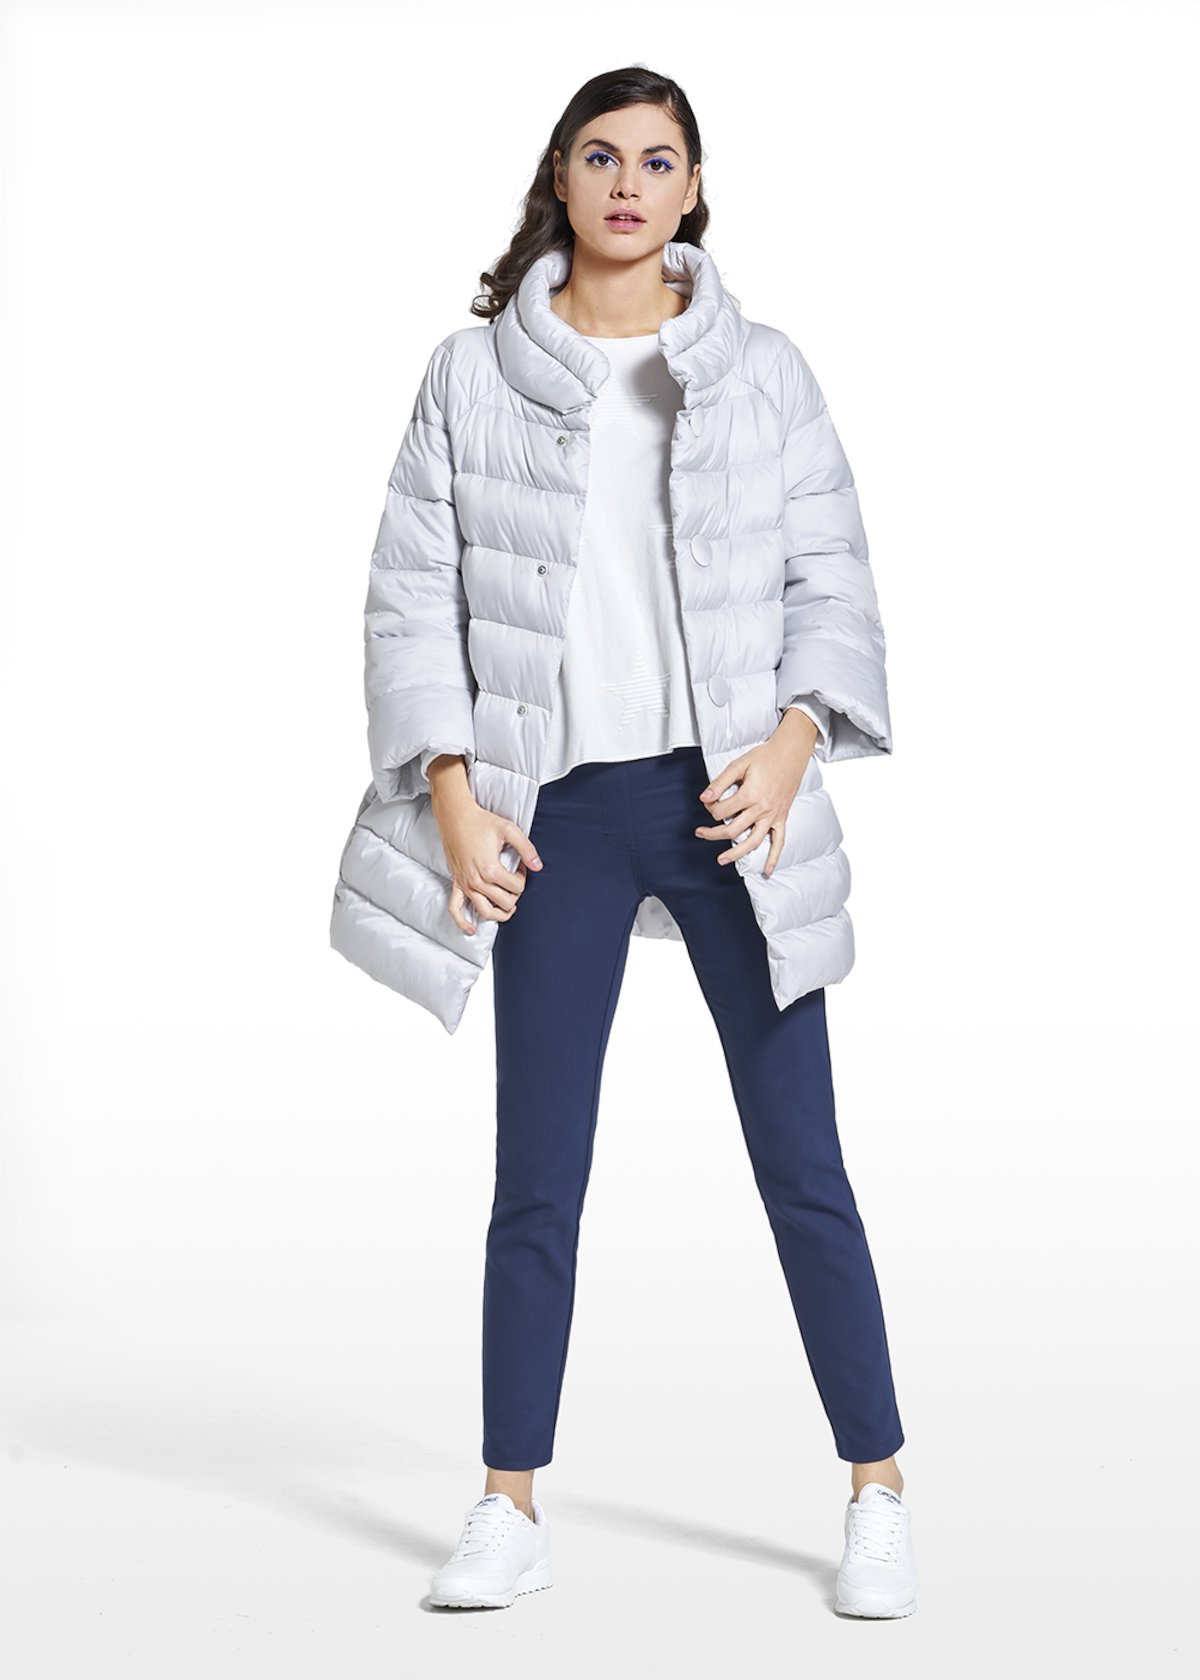 Down jacket Pablo with sleeves and high collar - Grey-Blue - Woman - Category image